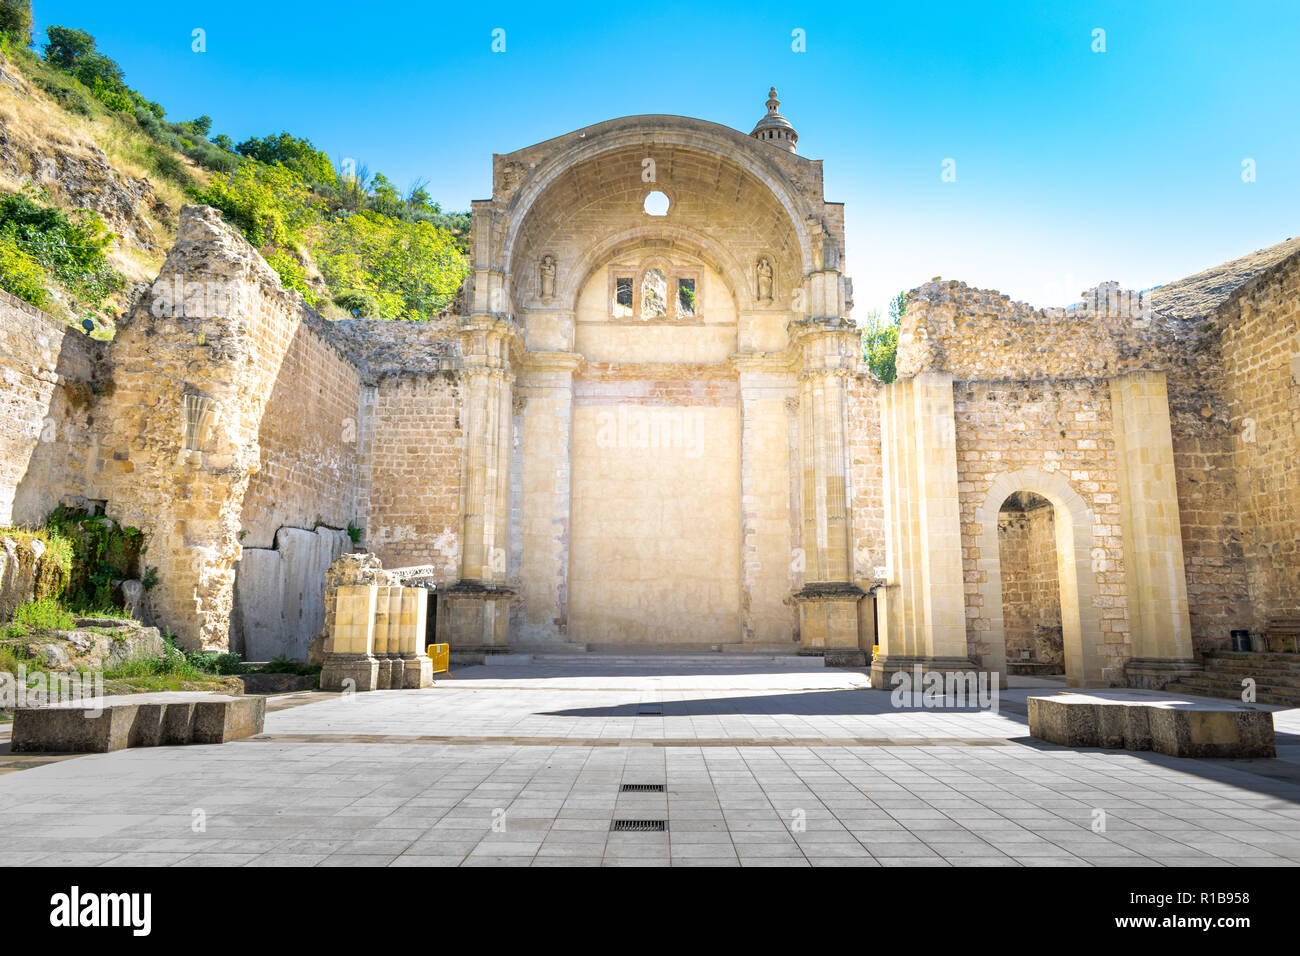 the ancient ruins which were the start of the creation of the town of Cazorla, Spain - Stock Image